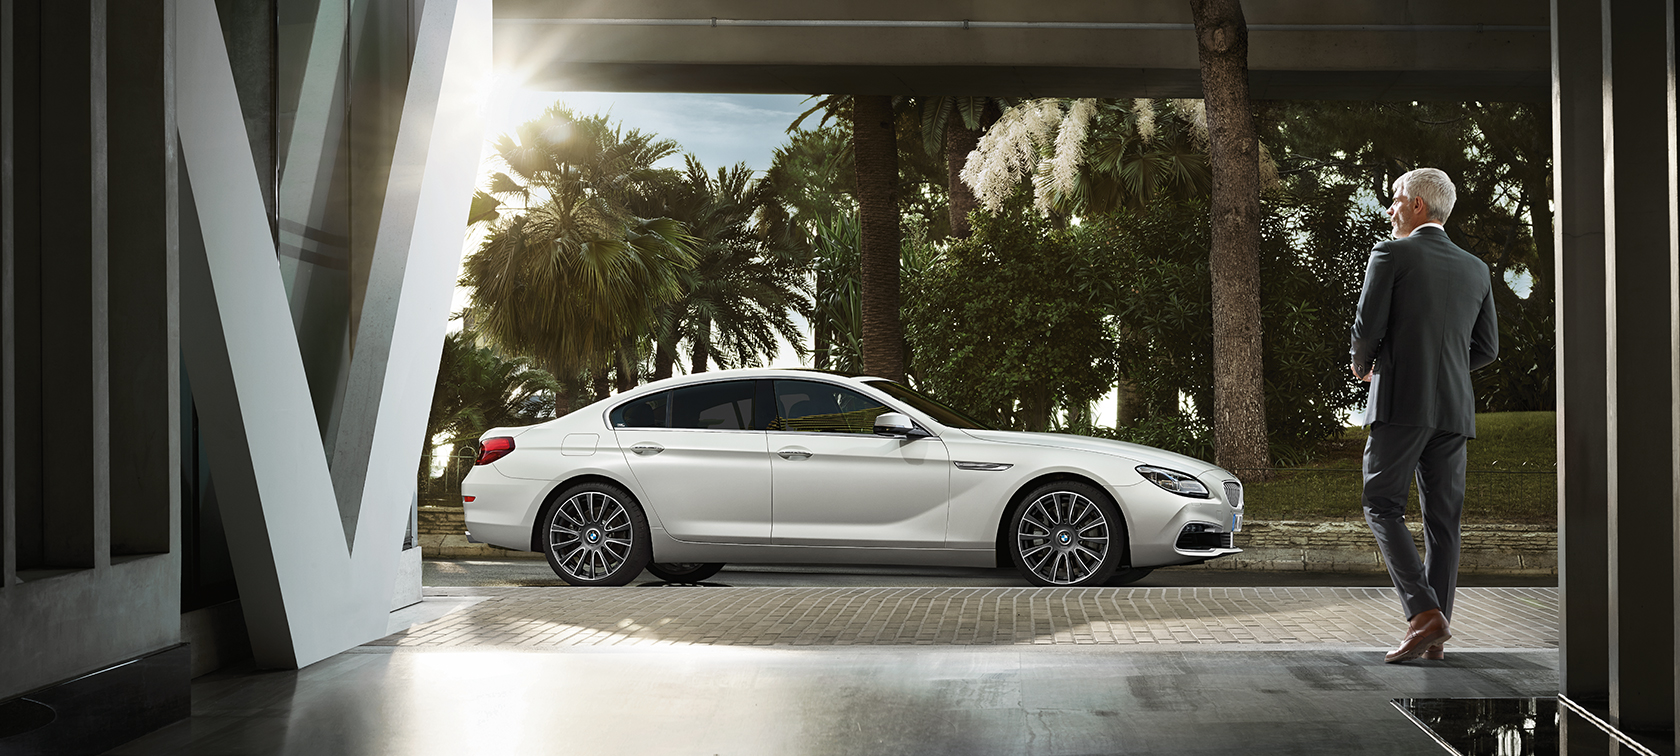 The design of the BMW 6 Series Gran Coupé